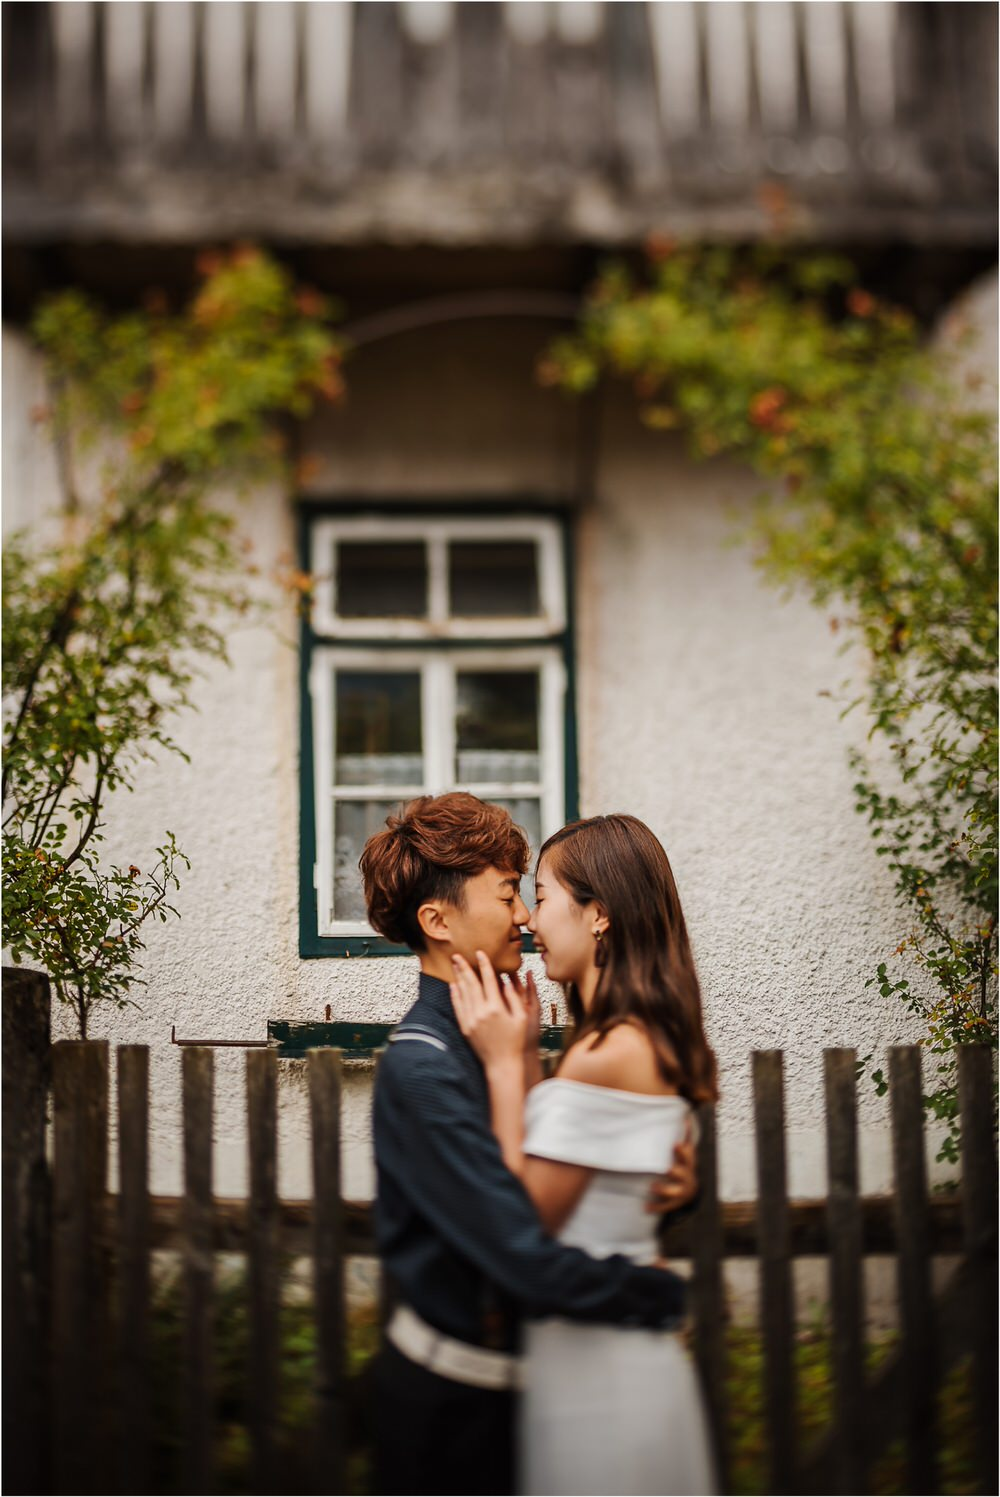 hallstatt austria wedding engagement photographer asian proposal surprise photography recommended nature professional 0042.jpg